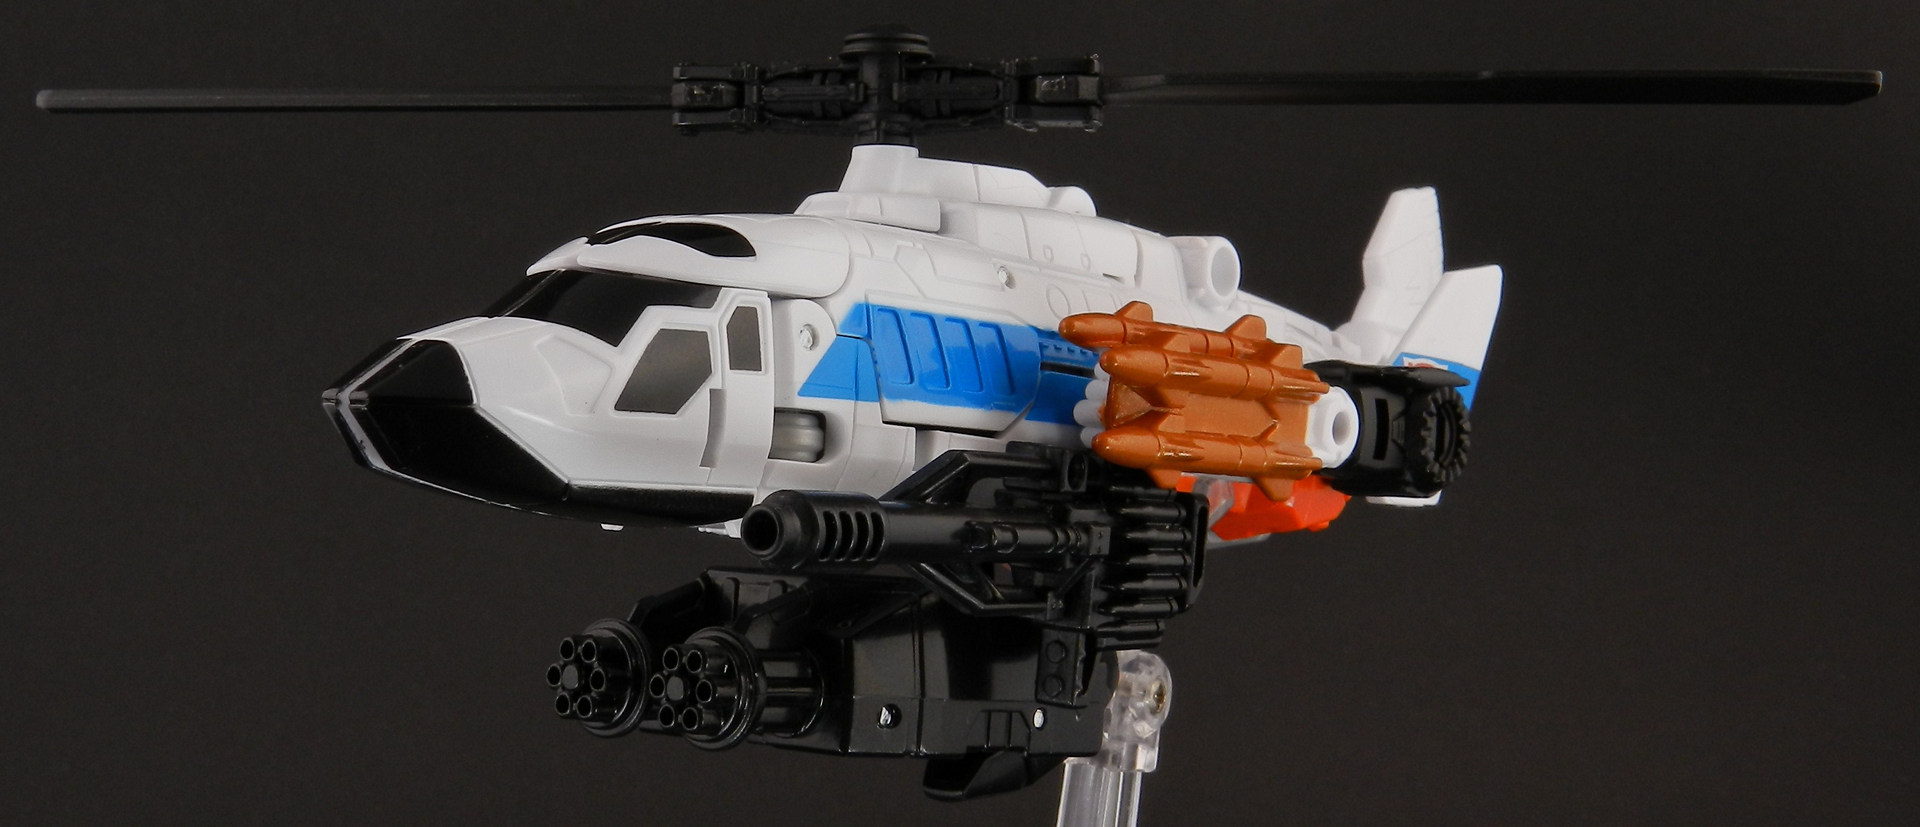 transformer helicopter space shuttle set - photo #3